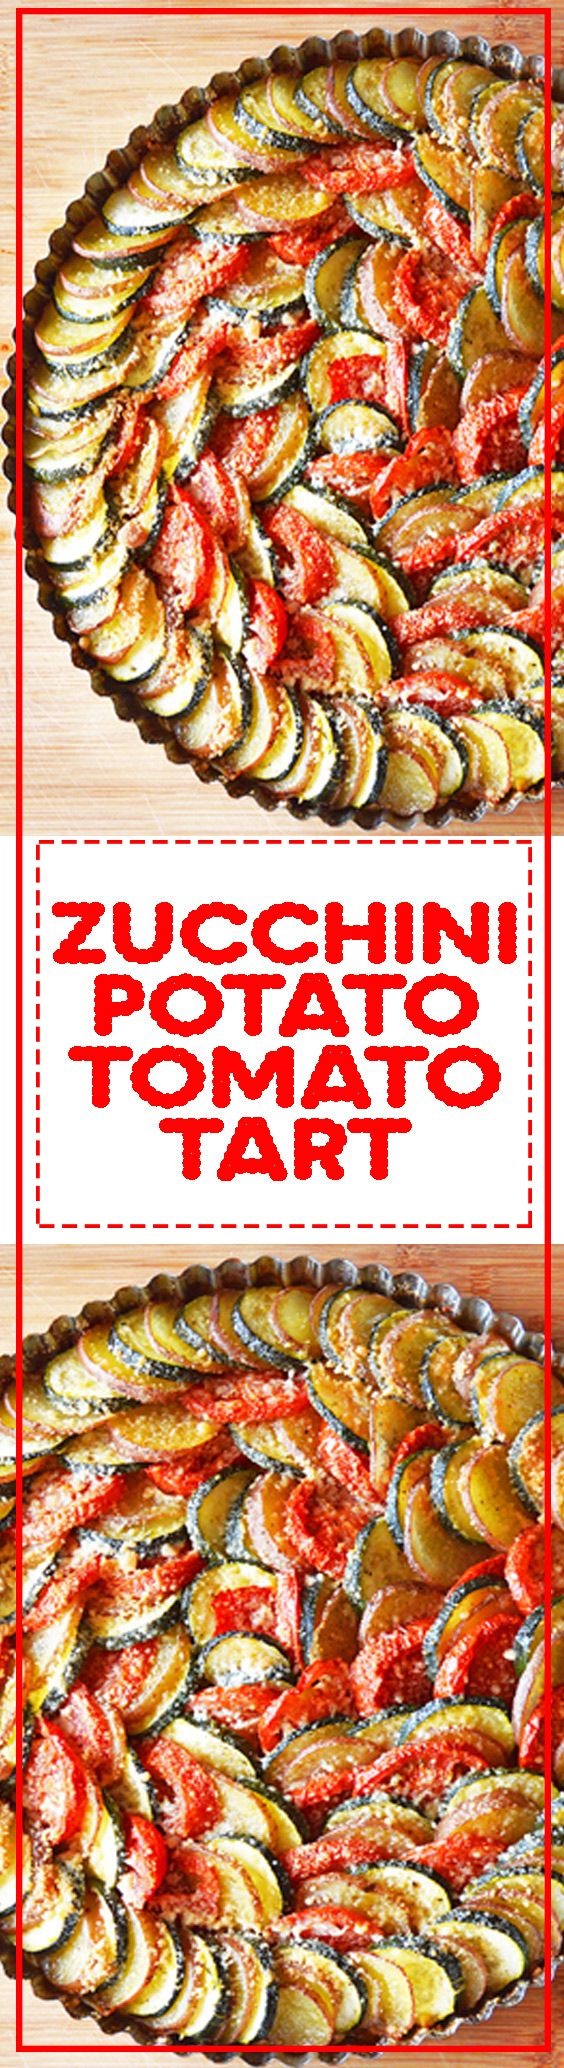 Zucchini Potato Tomato Tart - If you want a delicious way to get your veggies, this vegetarian tart is your perfect meal. Easy and simple weeknight dinner